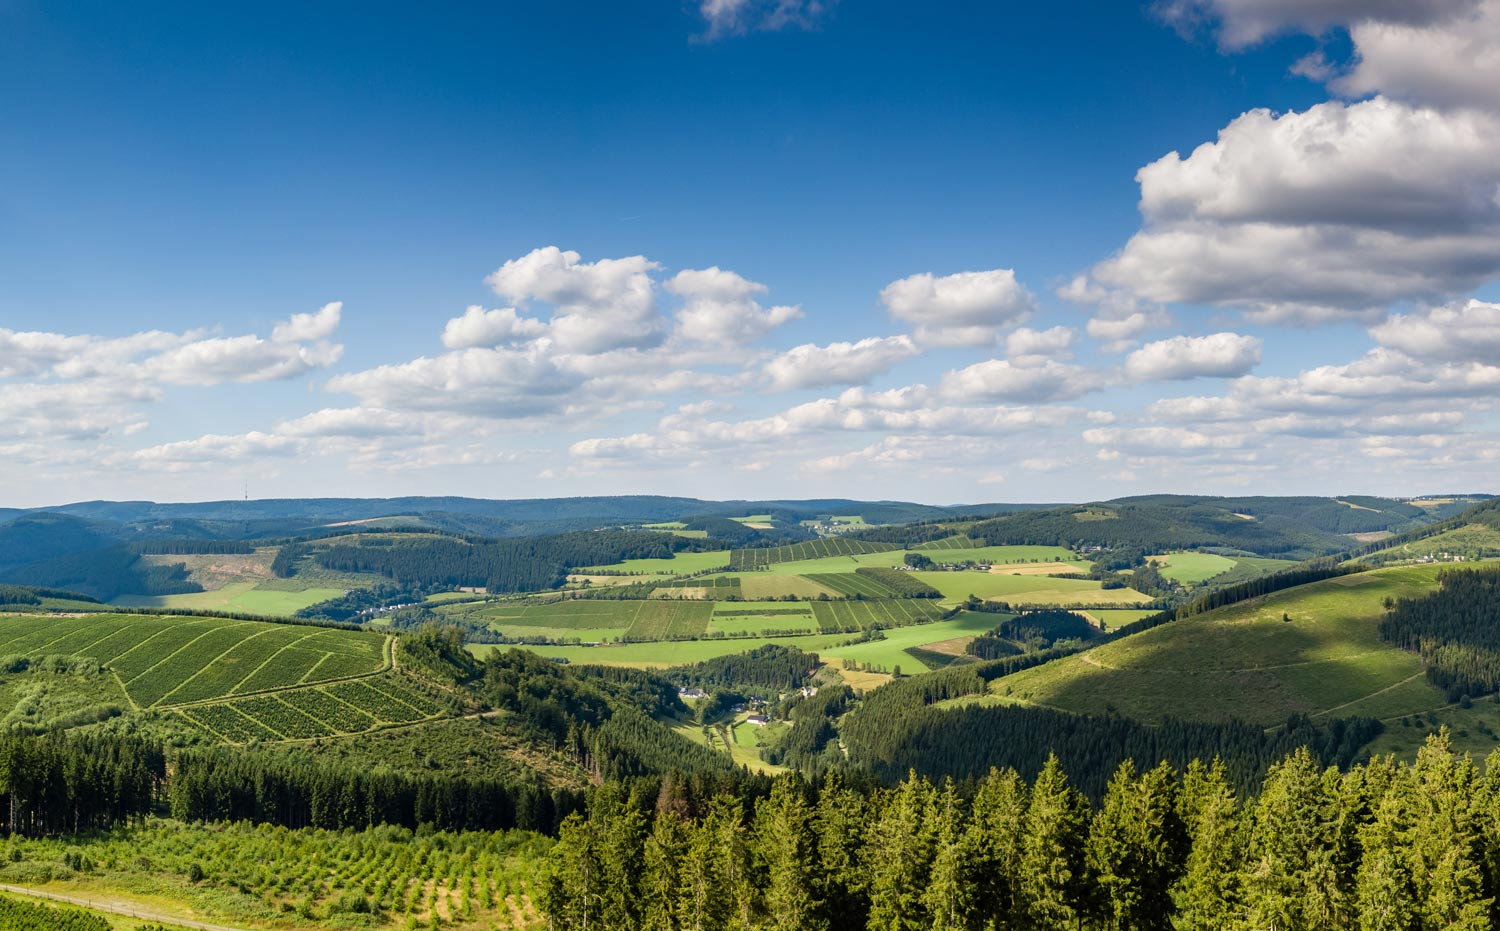 Single mit kind sauerland